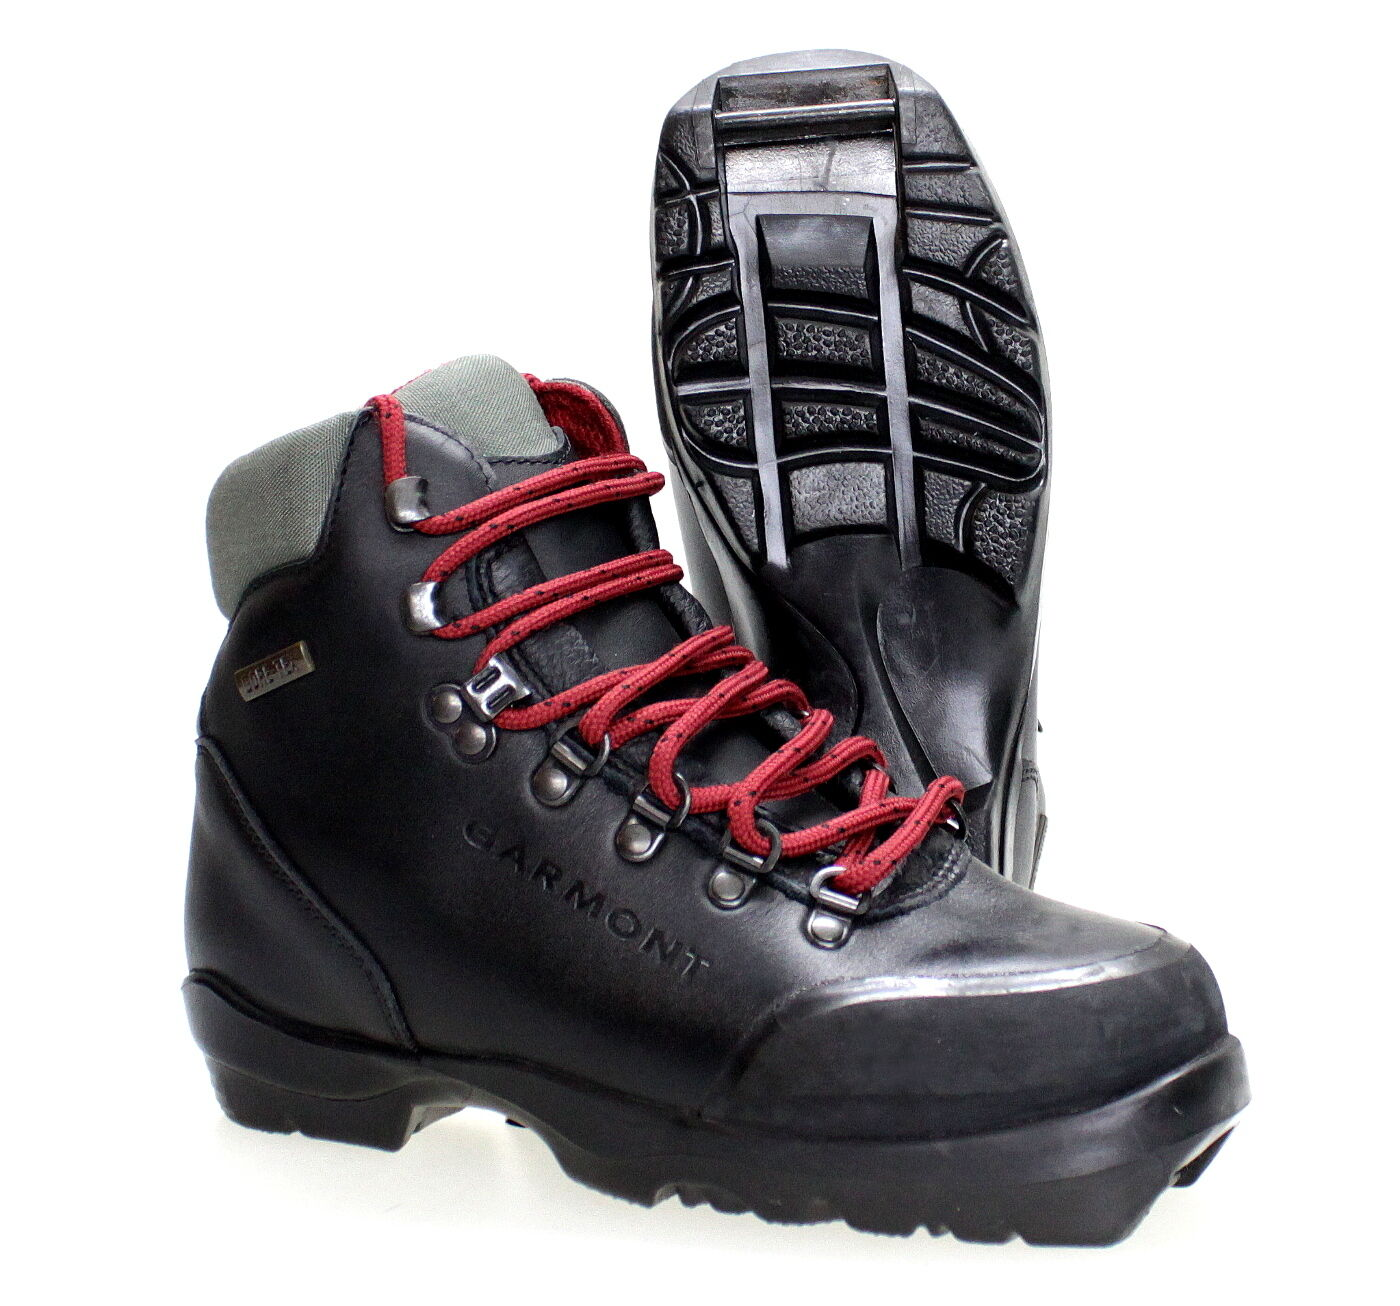 Long Running  shoes Ski Boot Garmont gtxbc Size 47 37,5 37 Skiing Binding NNN Ski s-n4  for sale